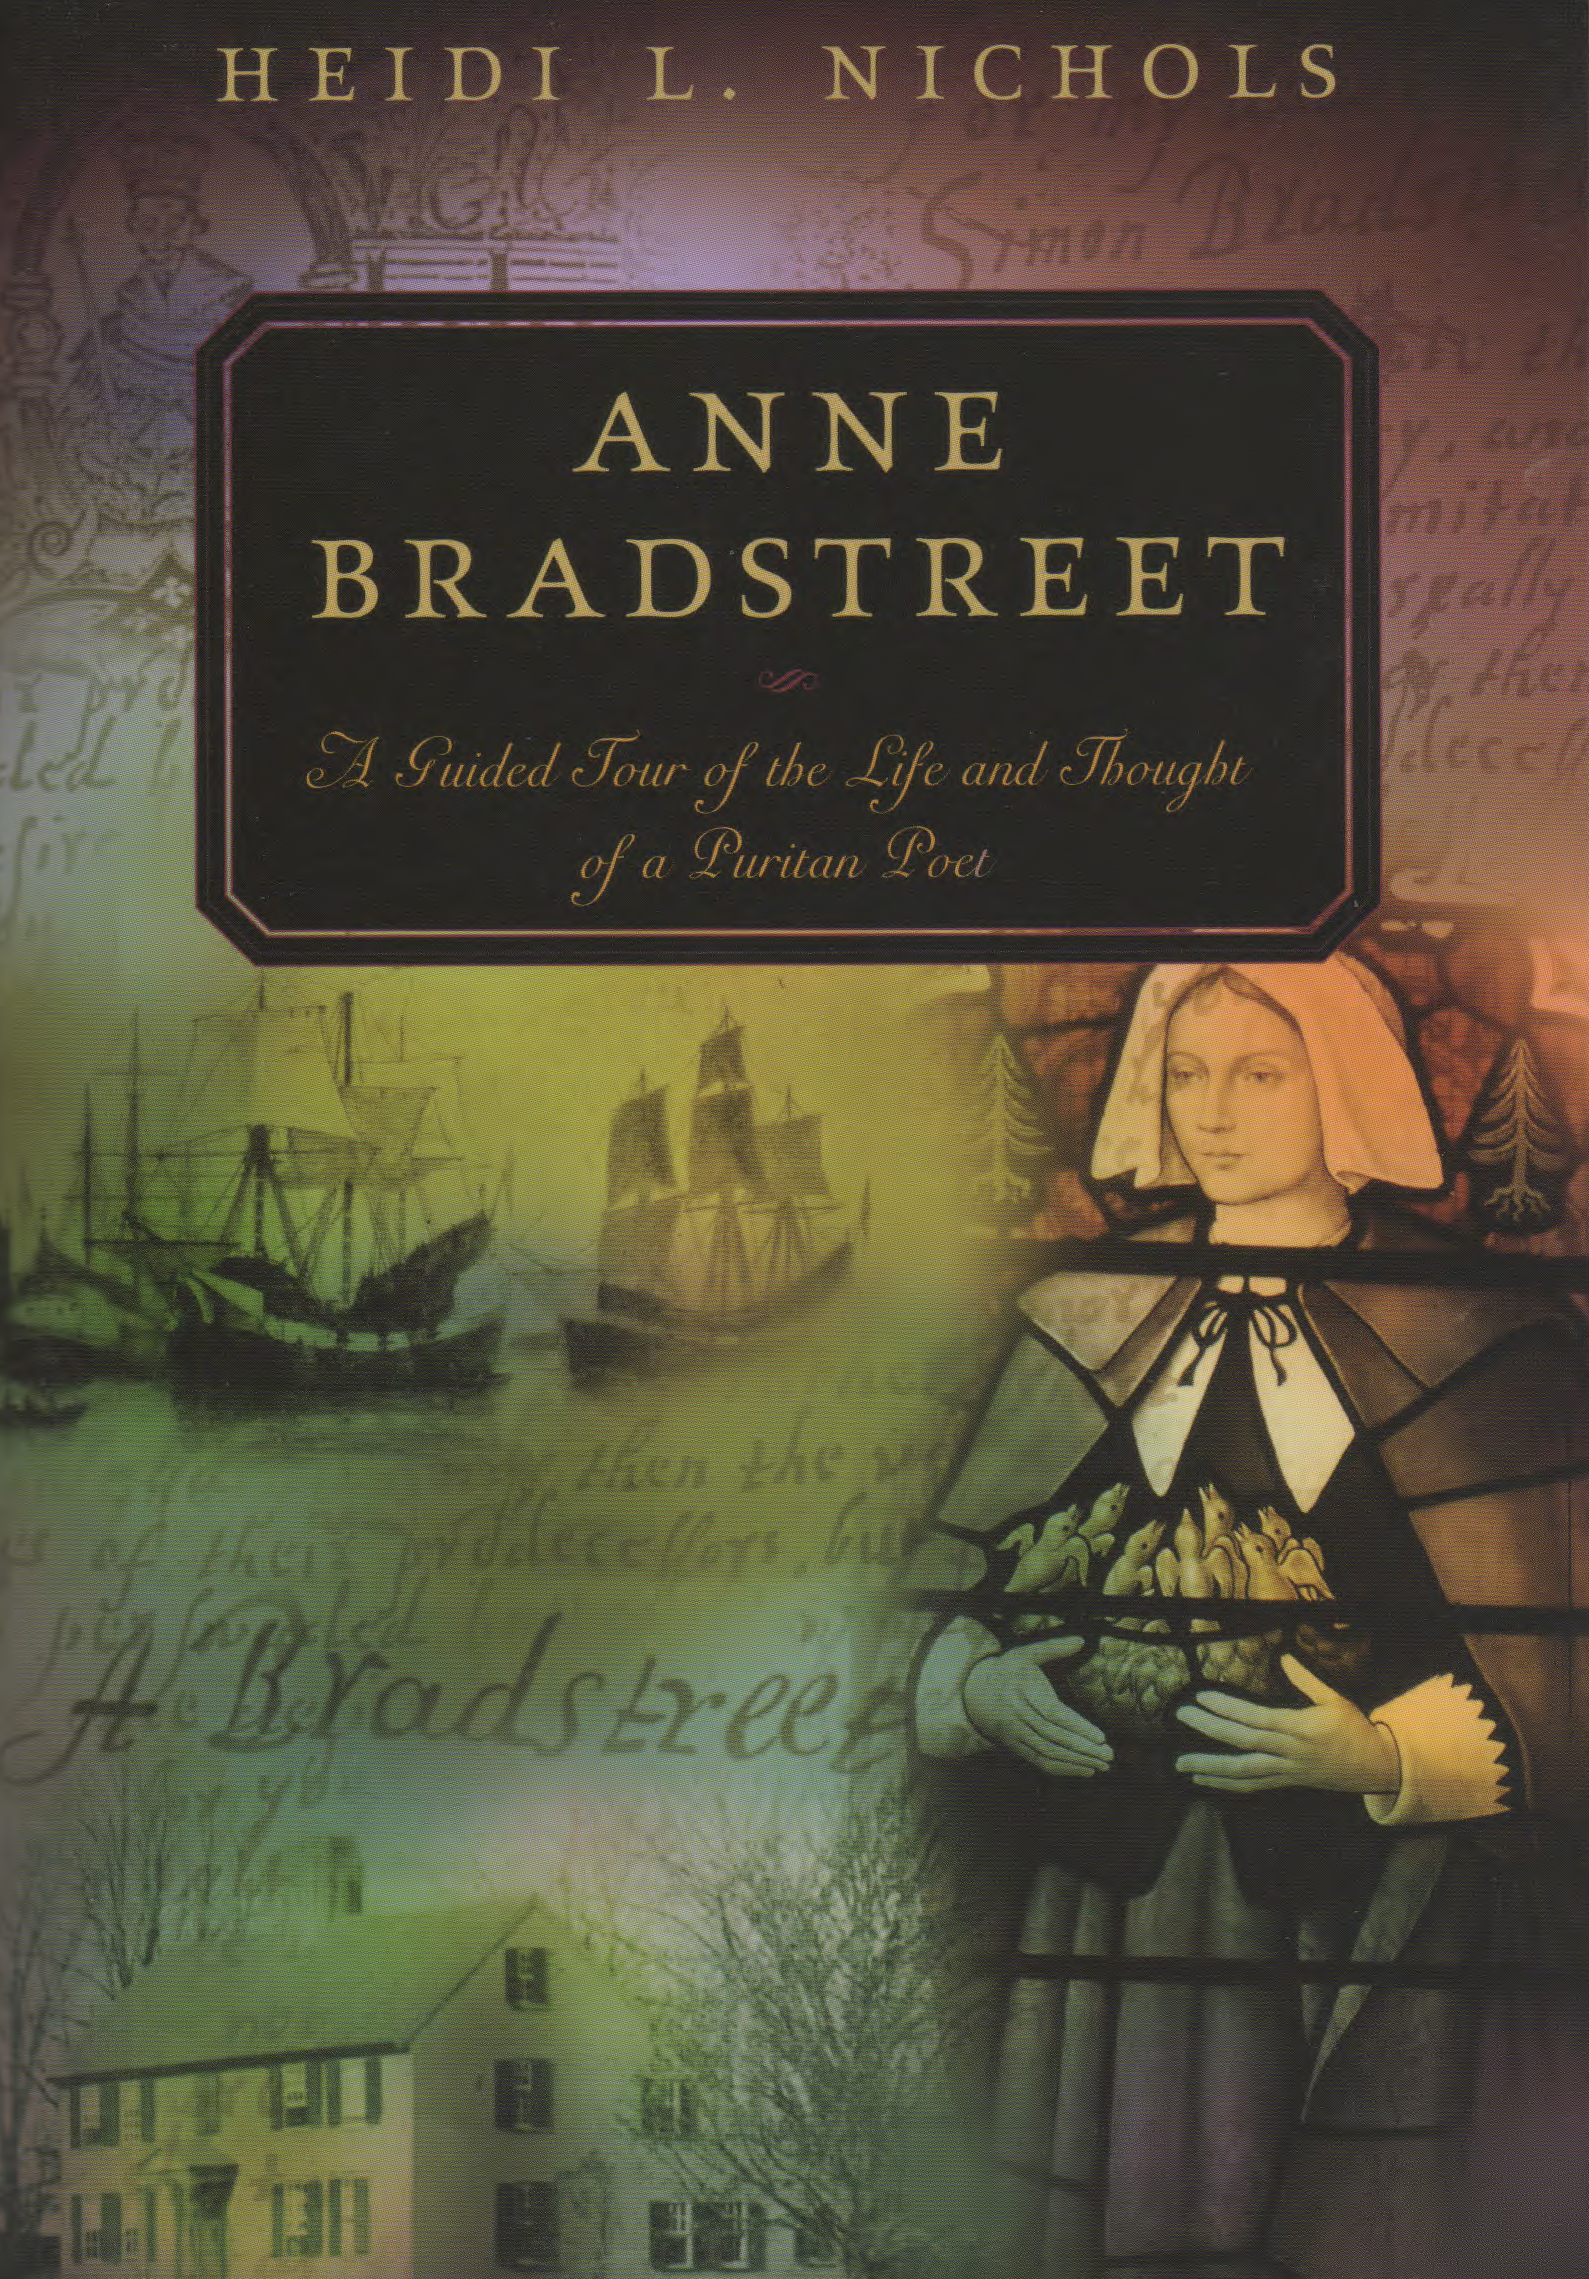 """anne bradstreet the heretical poet Anne bradstreet was born in northampton, england in 1612 her father, thomas dudley, was a puritan, but bradstreet loved to read and seemed to be drawn to the """"puritan world"""" herself at the age of 16 she married simon bradstreet who was also a puritan."""